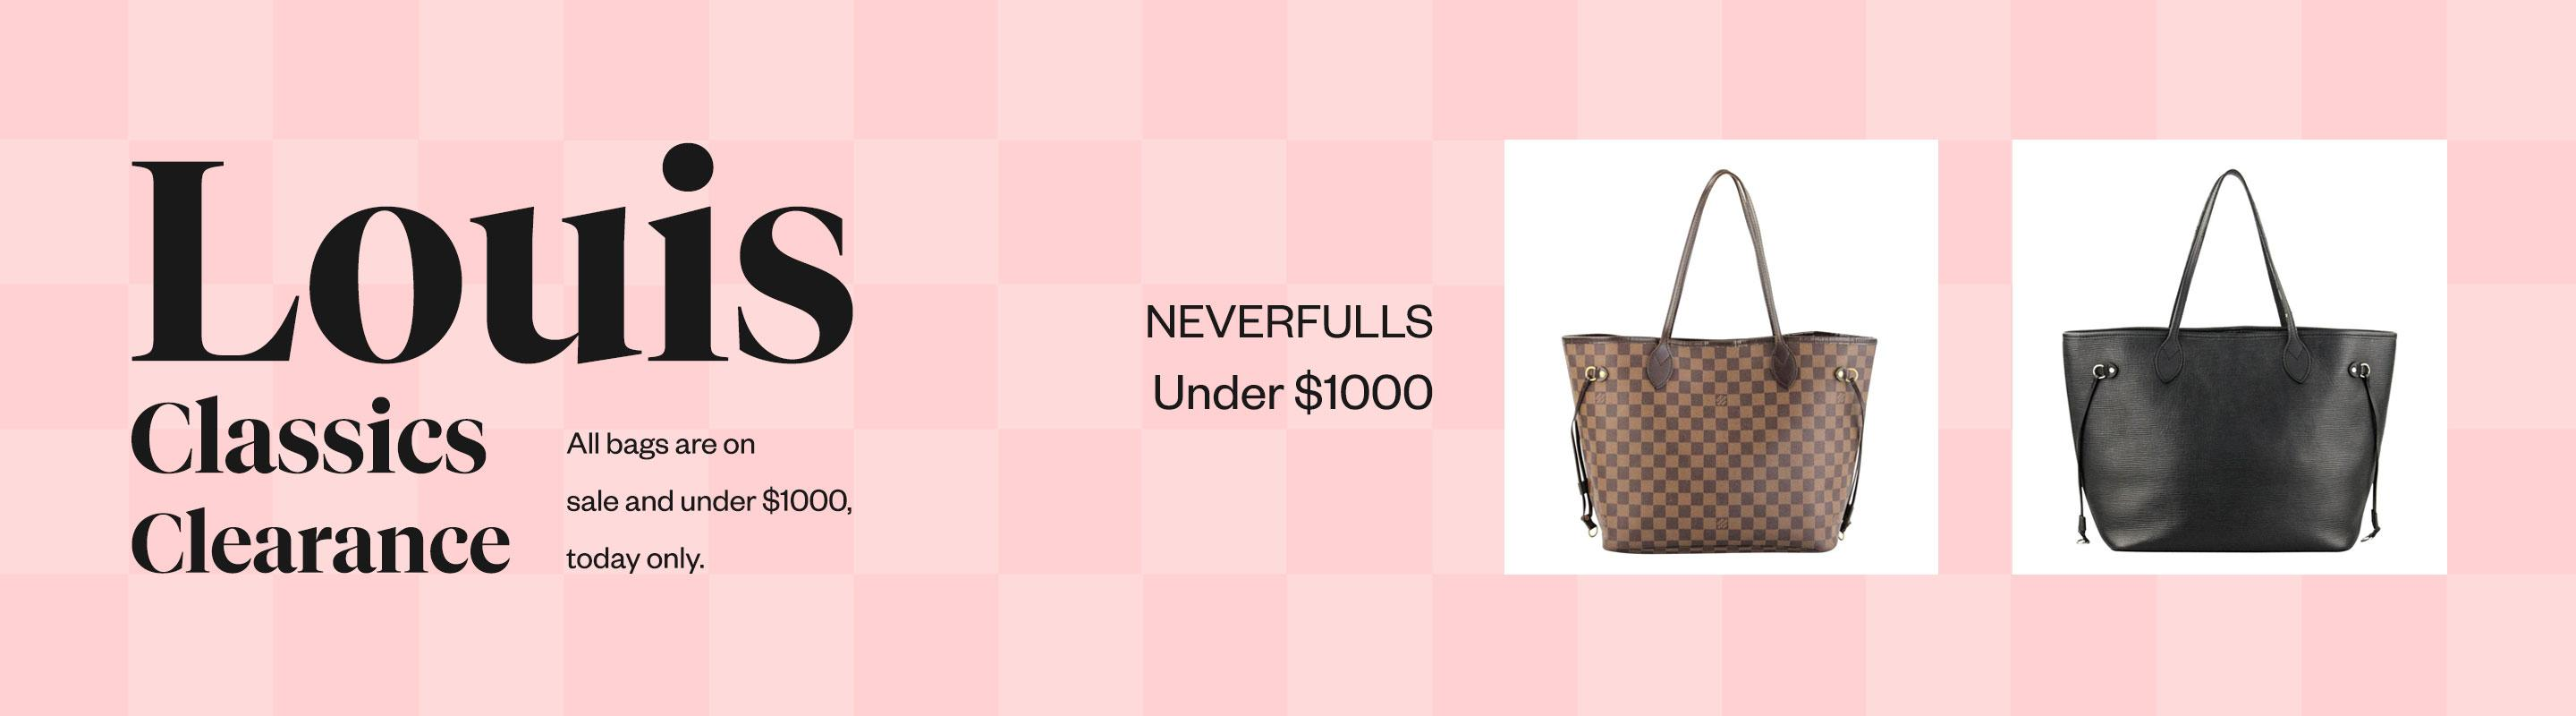 Louis Classics Clearance: Neverfull